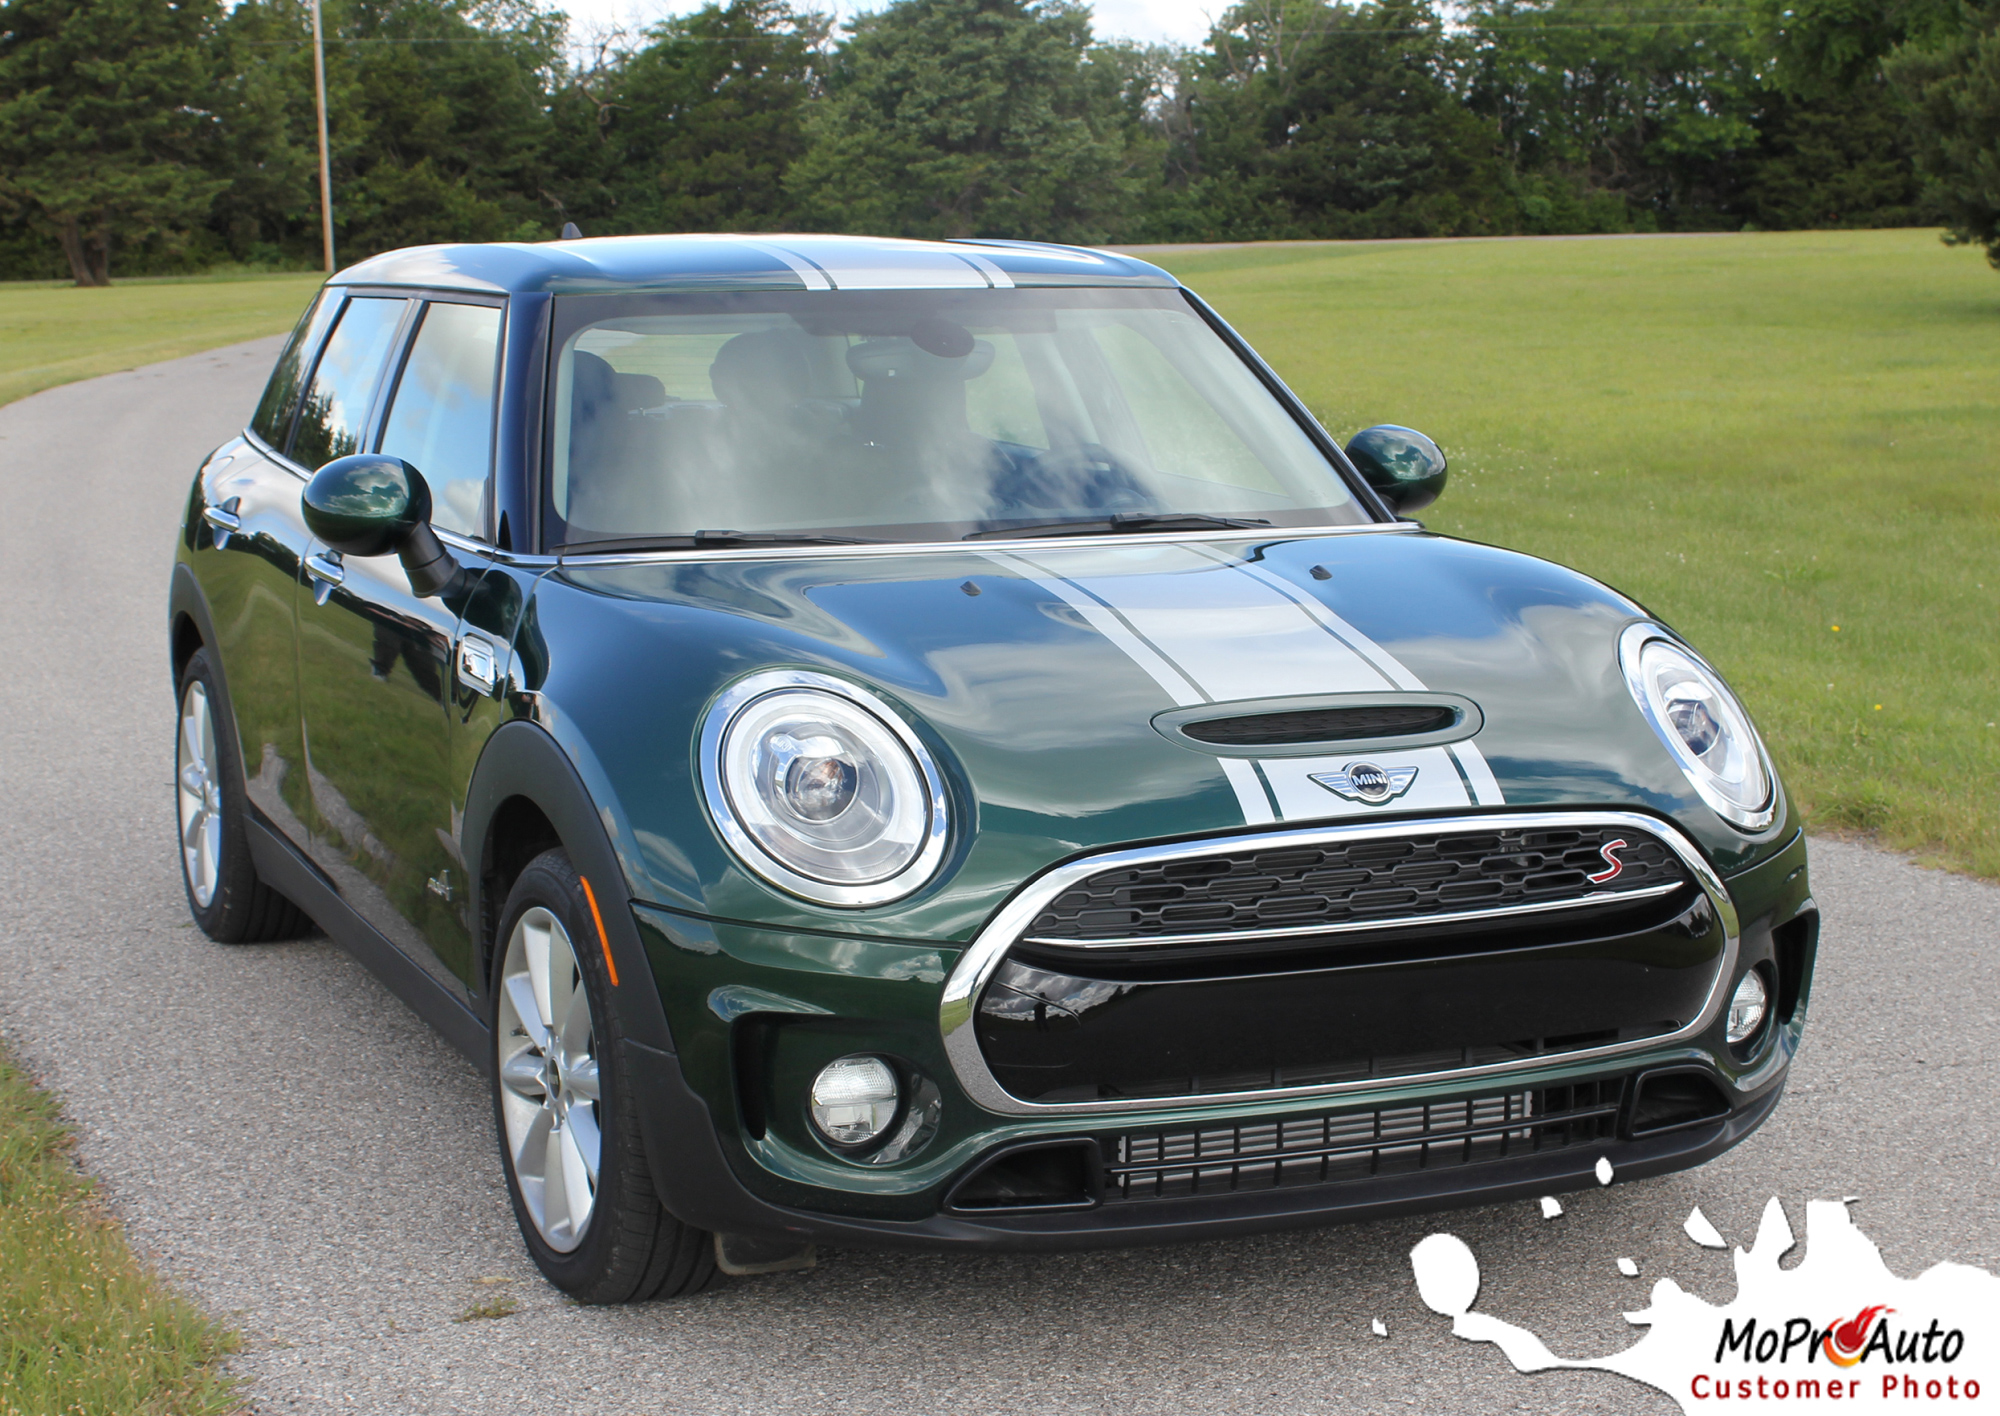 Mini Cooper CLUBMAN S-TYPE HOOD CENTER STRIPES Vinyl Graphics Stripes and Decals Kit